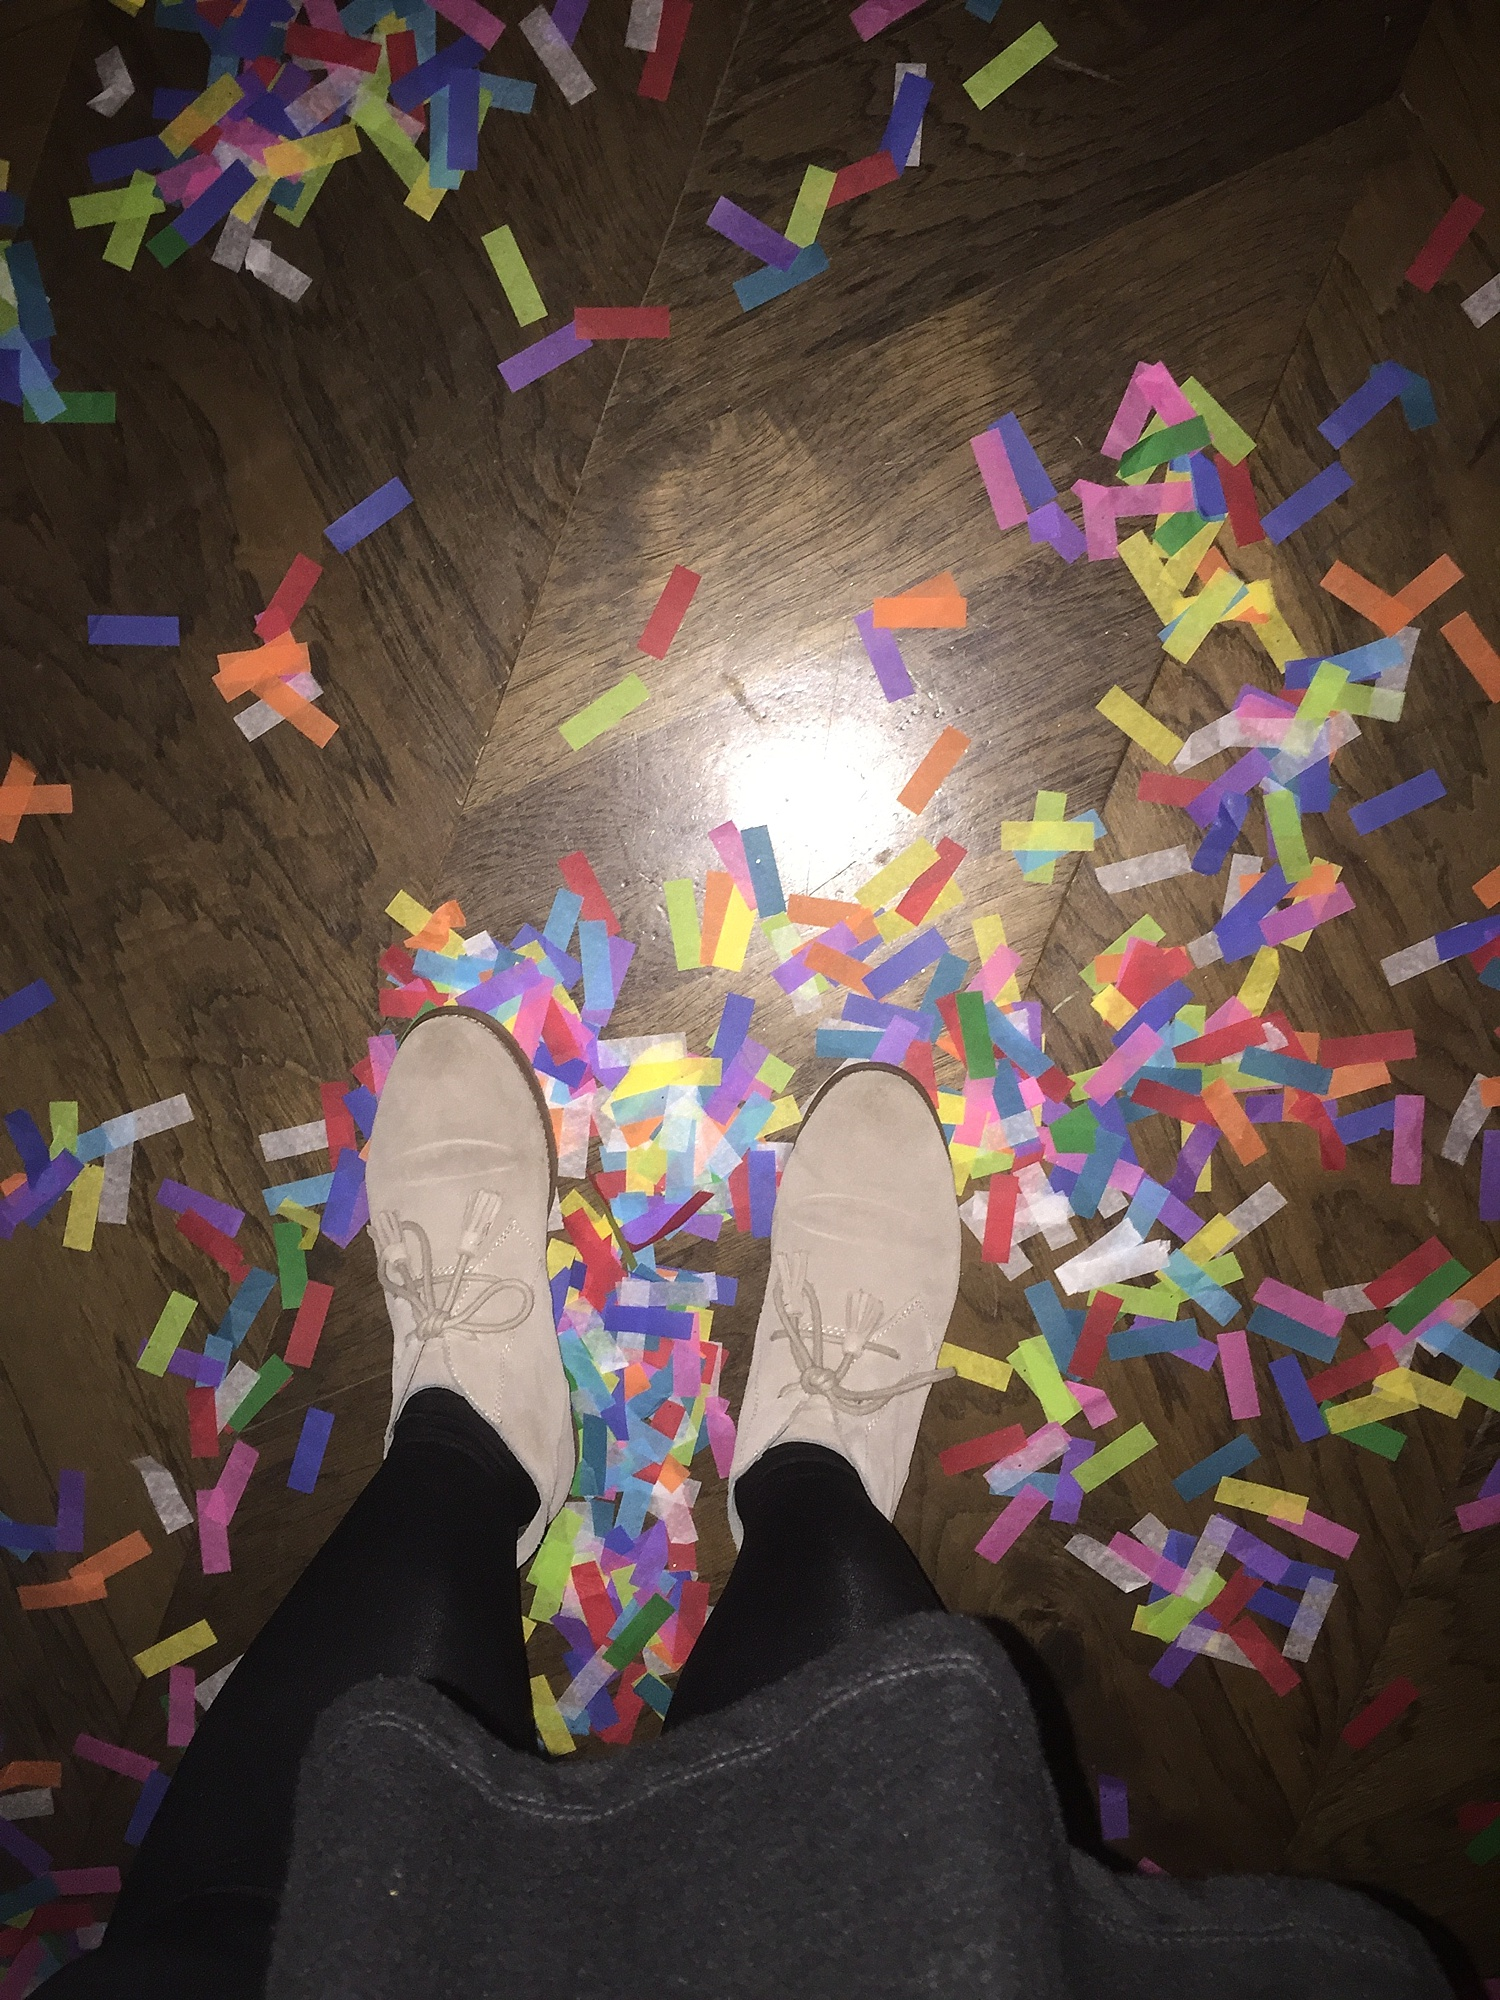 We did an awesome wedding on New Years Eve and the couple had everyone shoot confetti at midnight. It made for an incredible shot, and a very colorful floor afterwards.